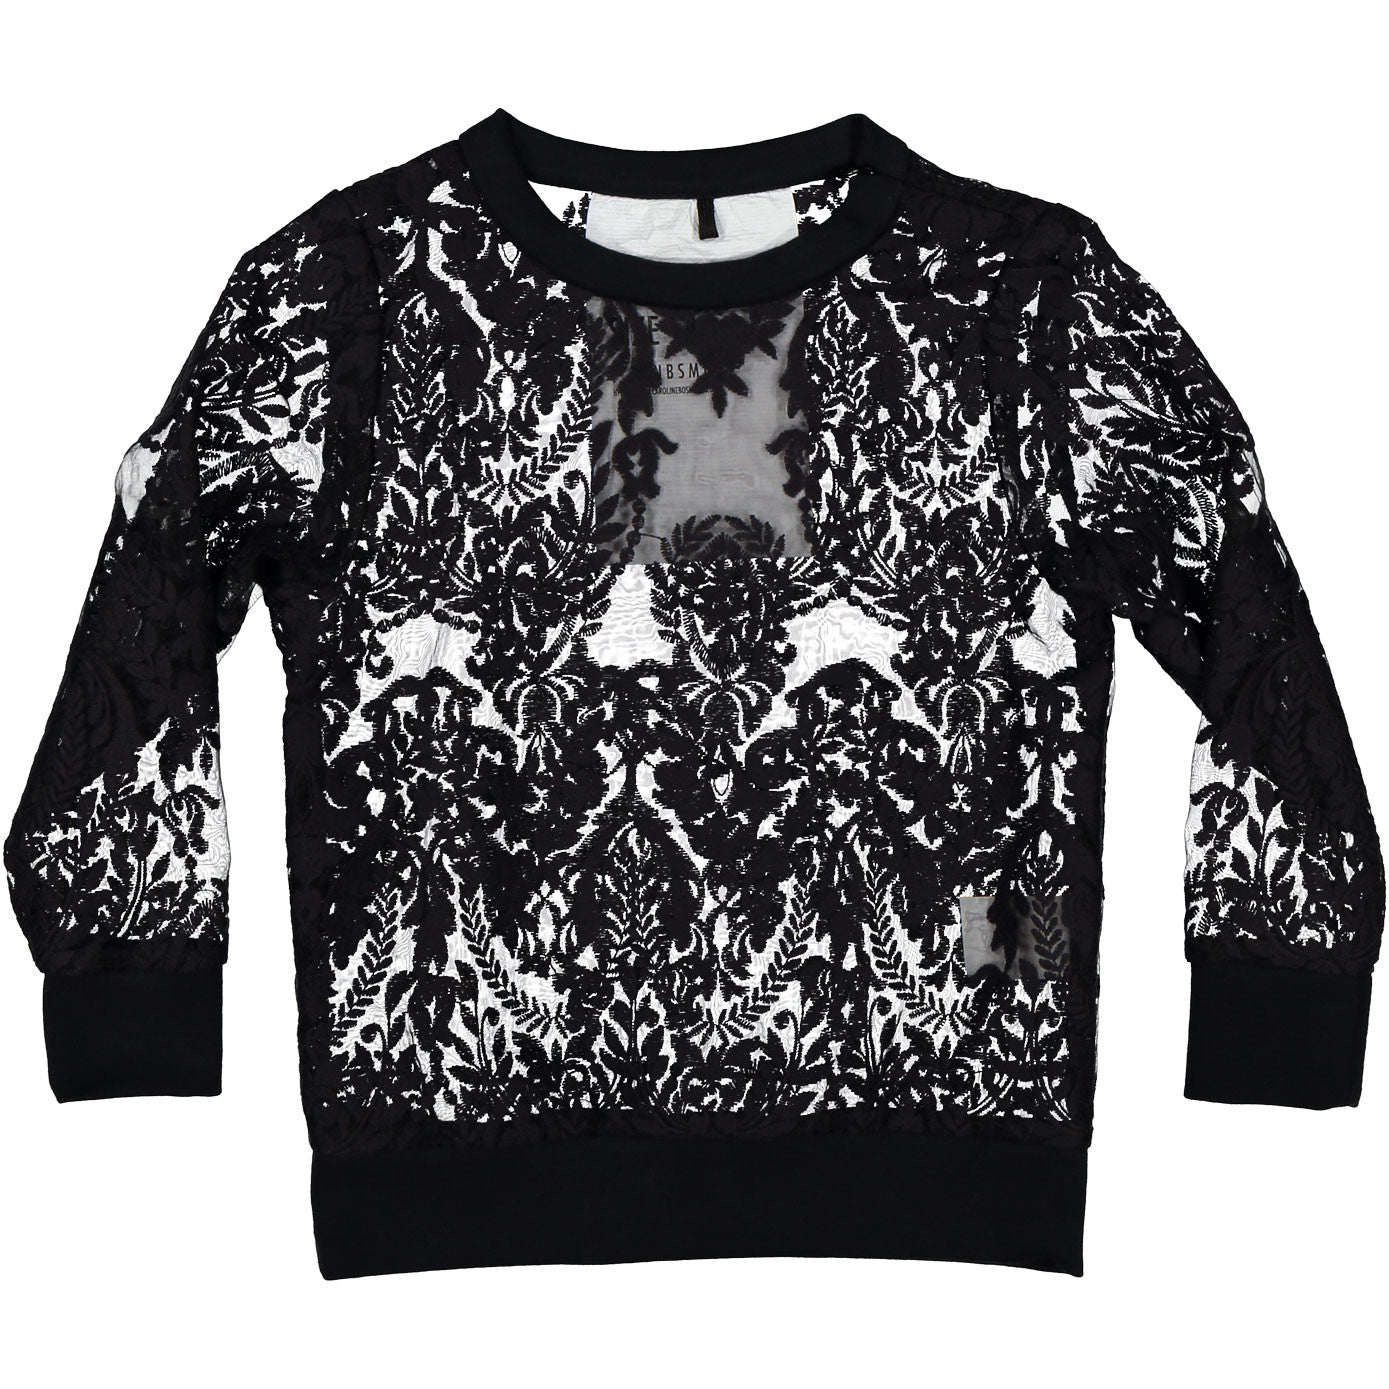 Caroline Bosmans Floral Organza Black Knitted Sweater - Ladida